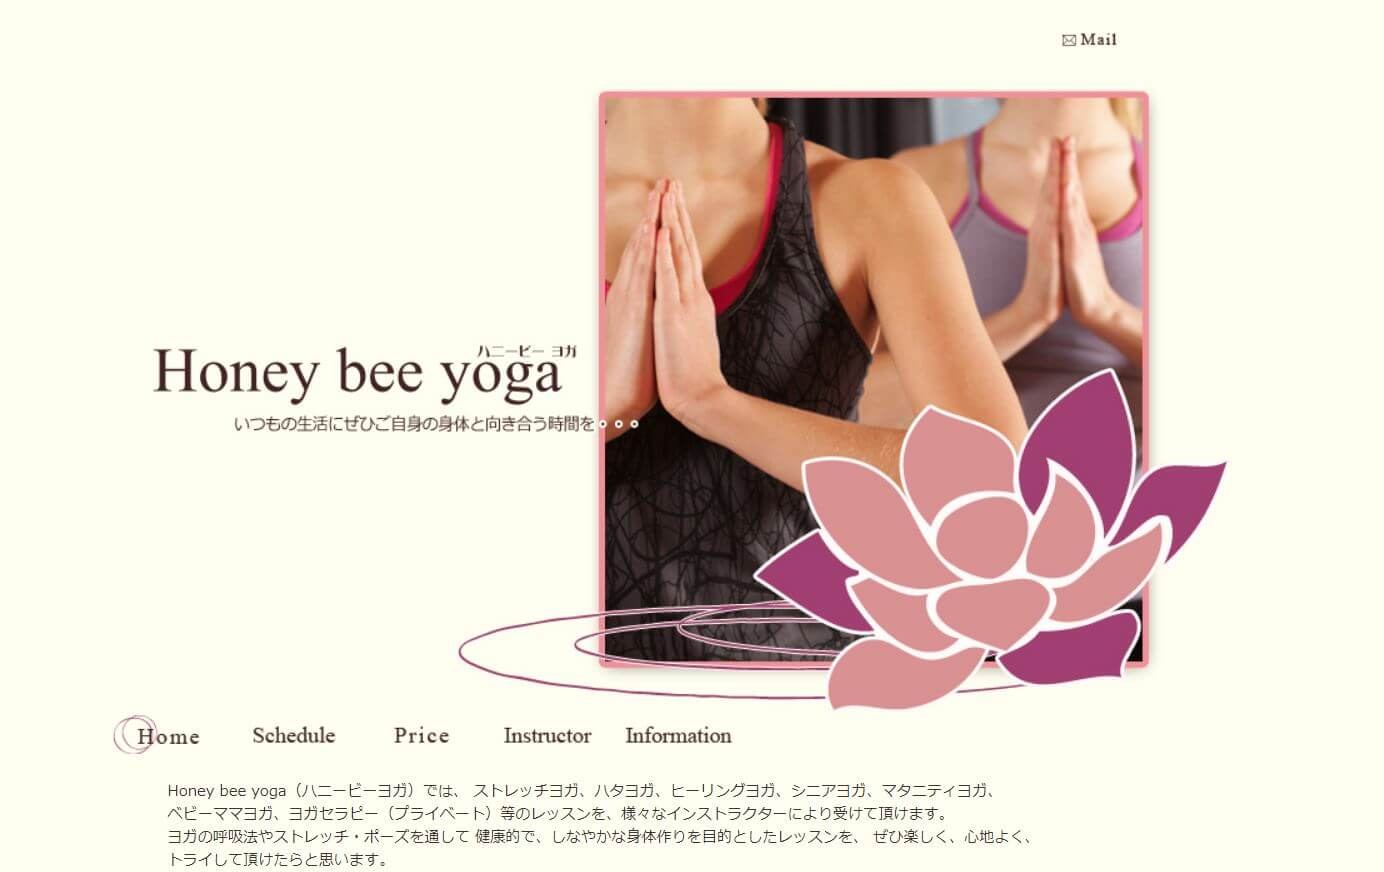 Honey bee yoga